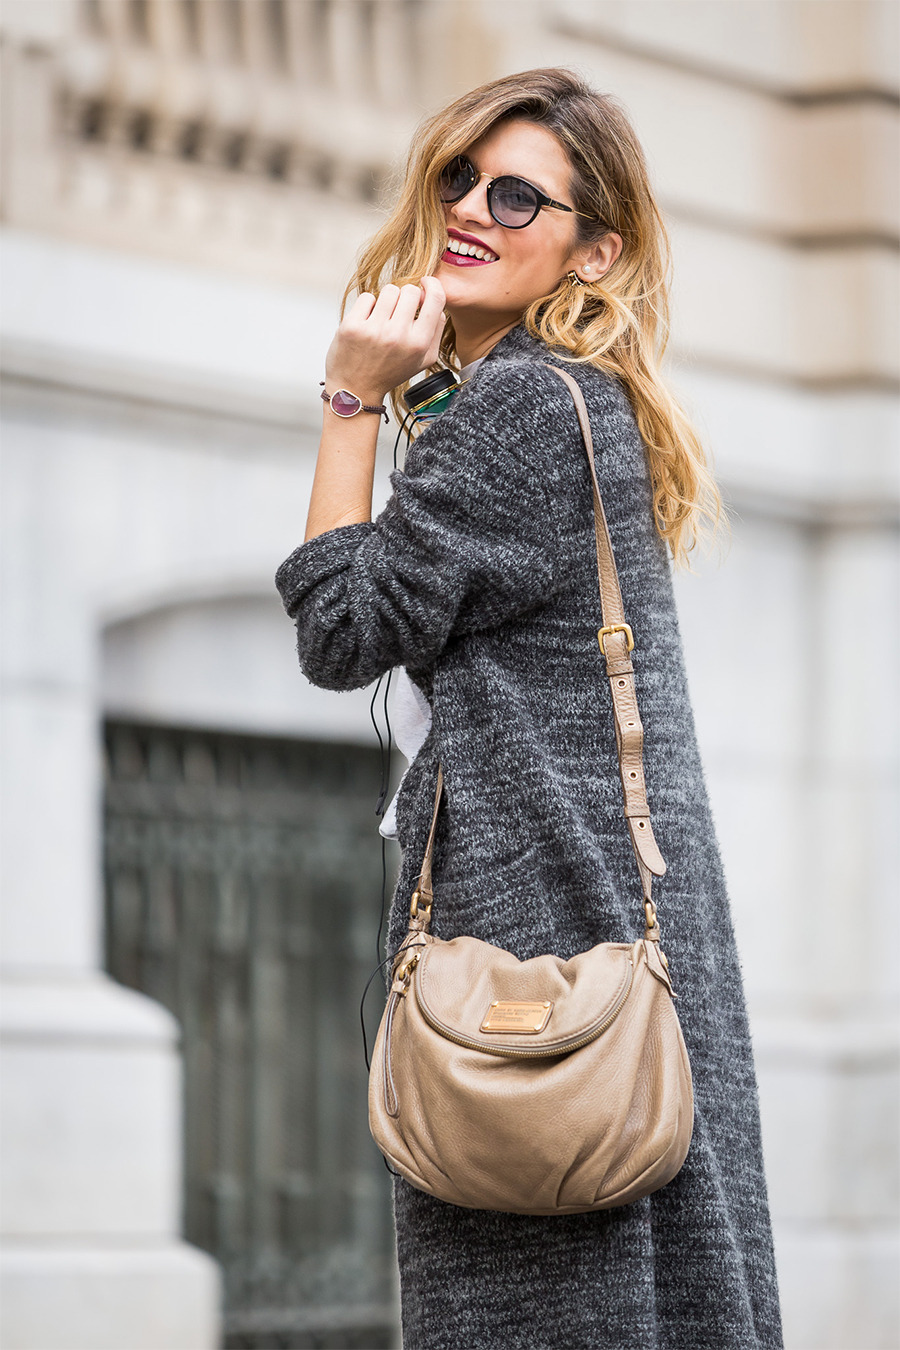 onlygrisly_silviaboschblog_smile_grey-outfit_barcelona-street-style